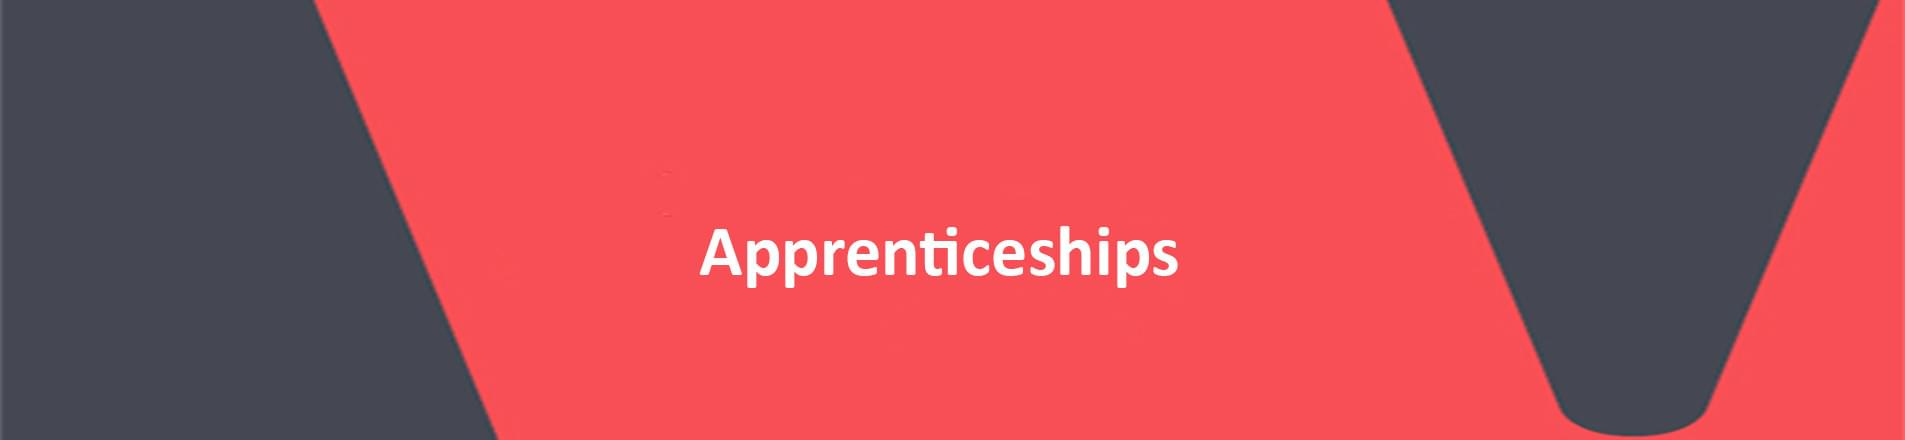 The word Apprenticeships on red VERCIDA branded background